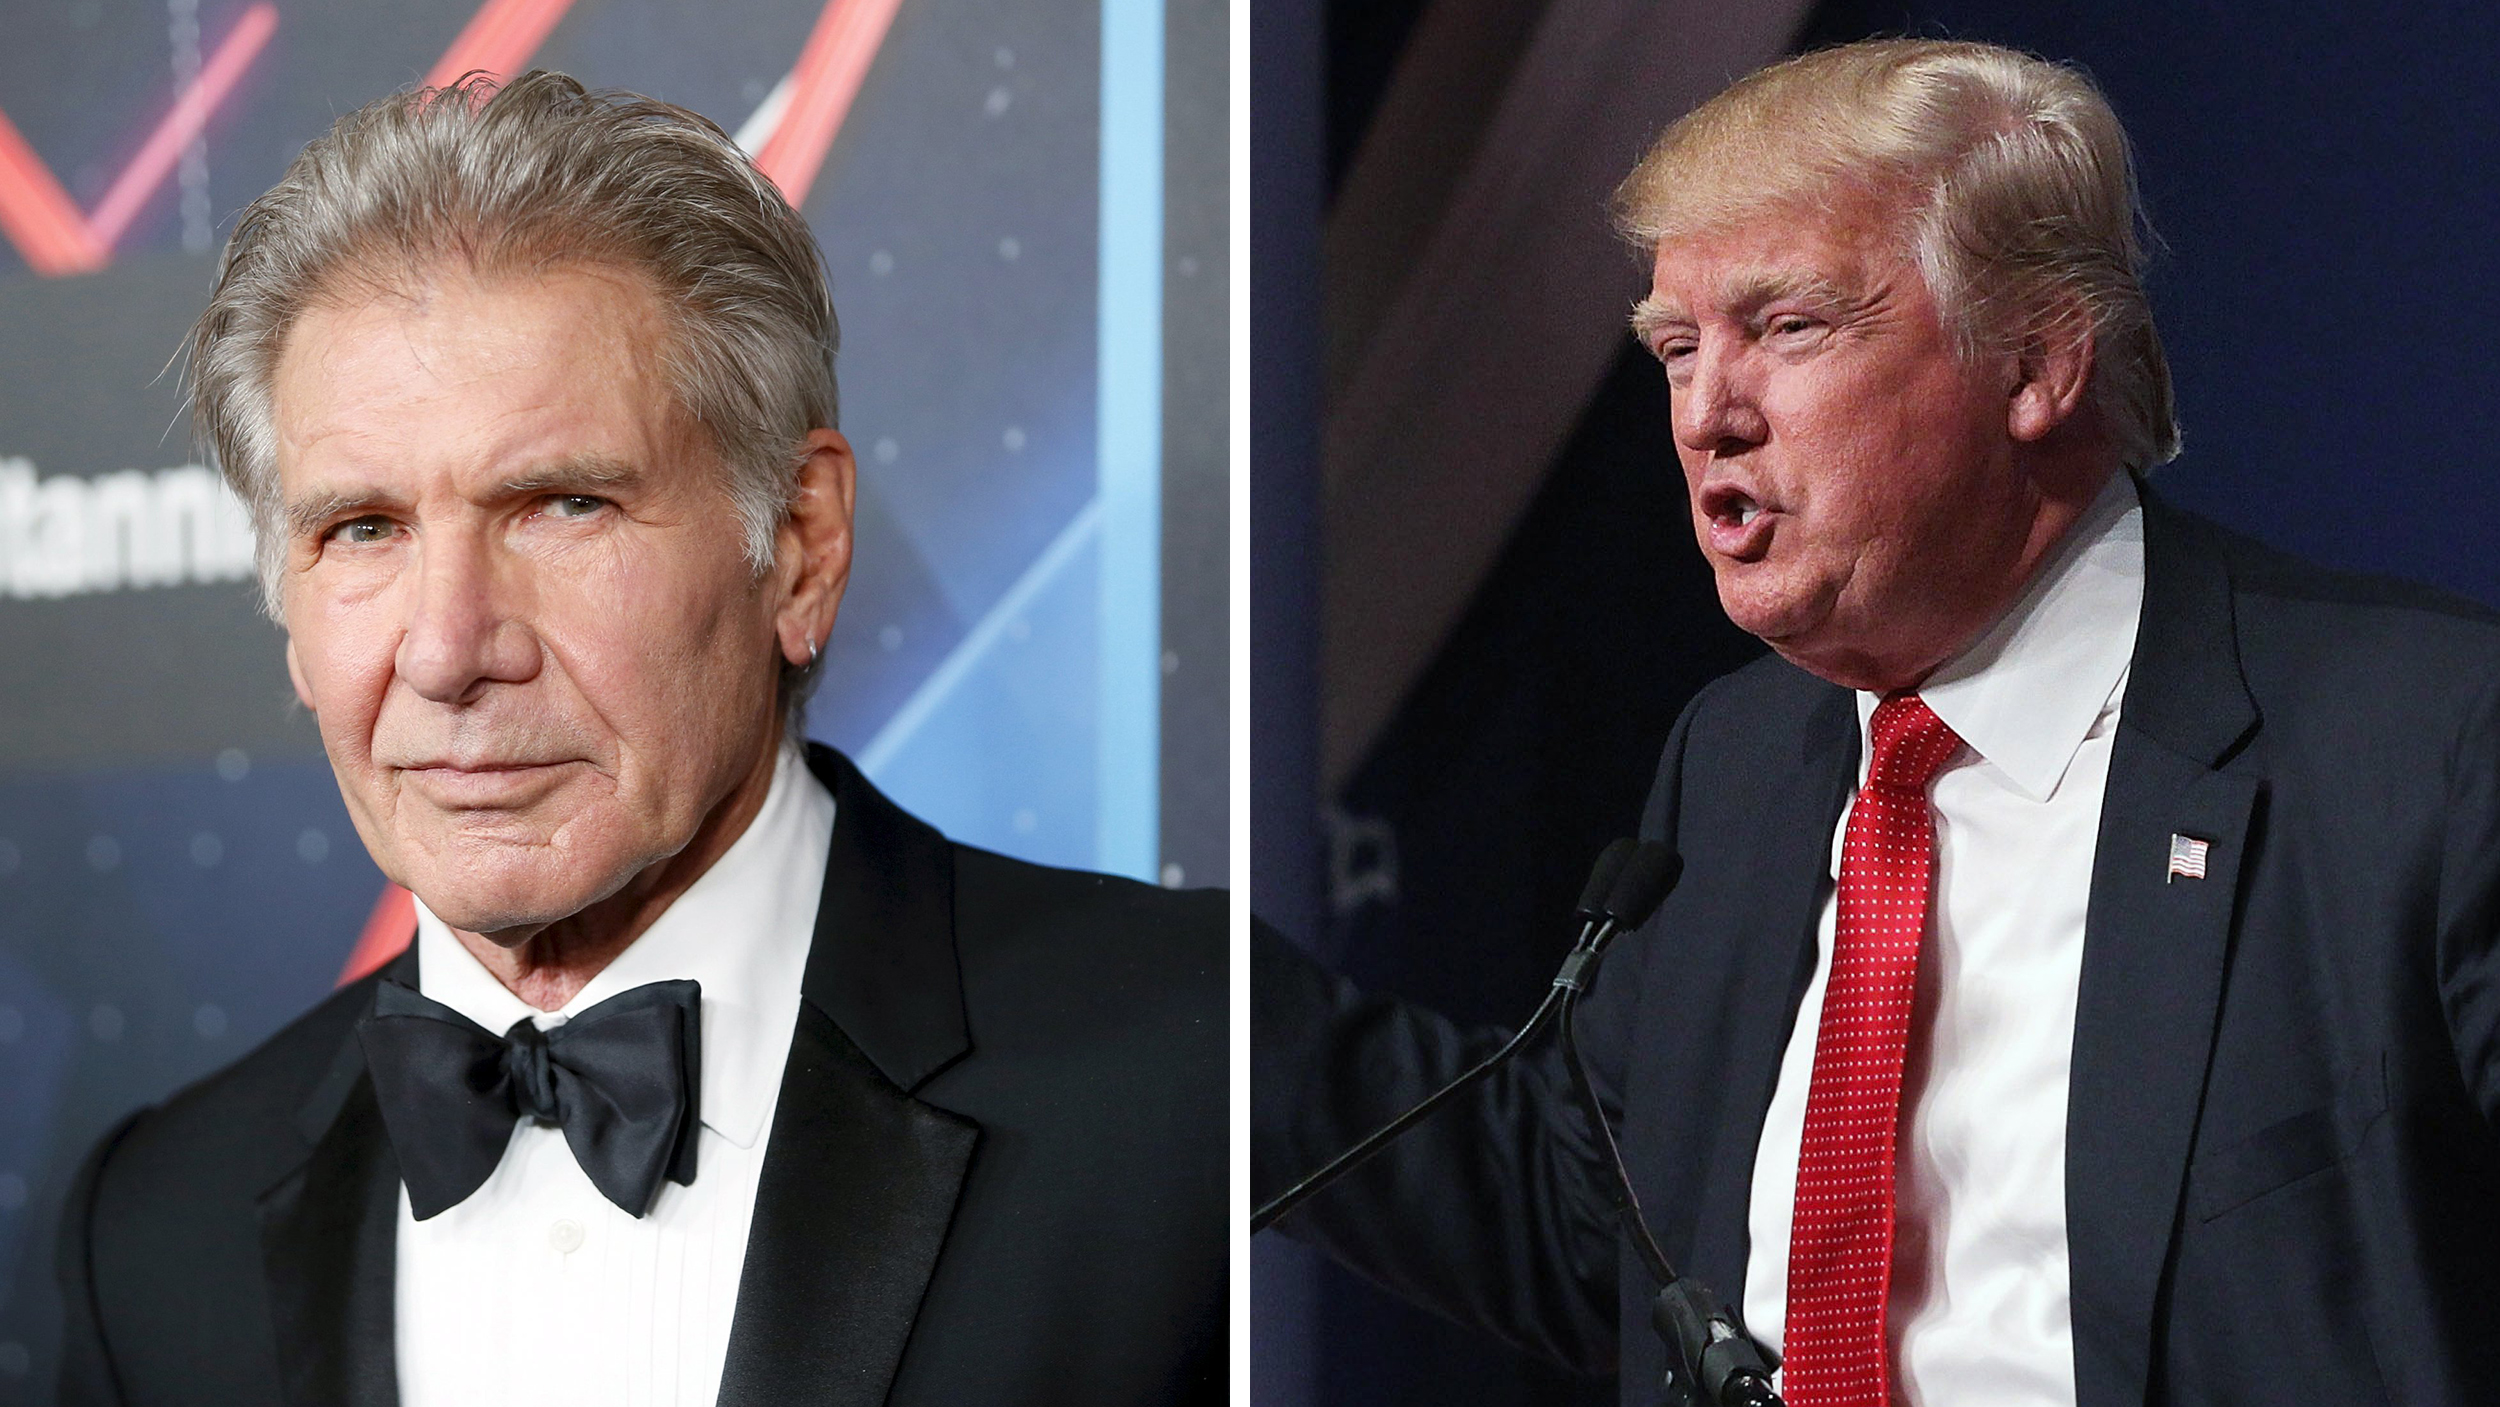 Harrison Ford reminds Donald Trump that 'Air Force One' was